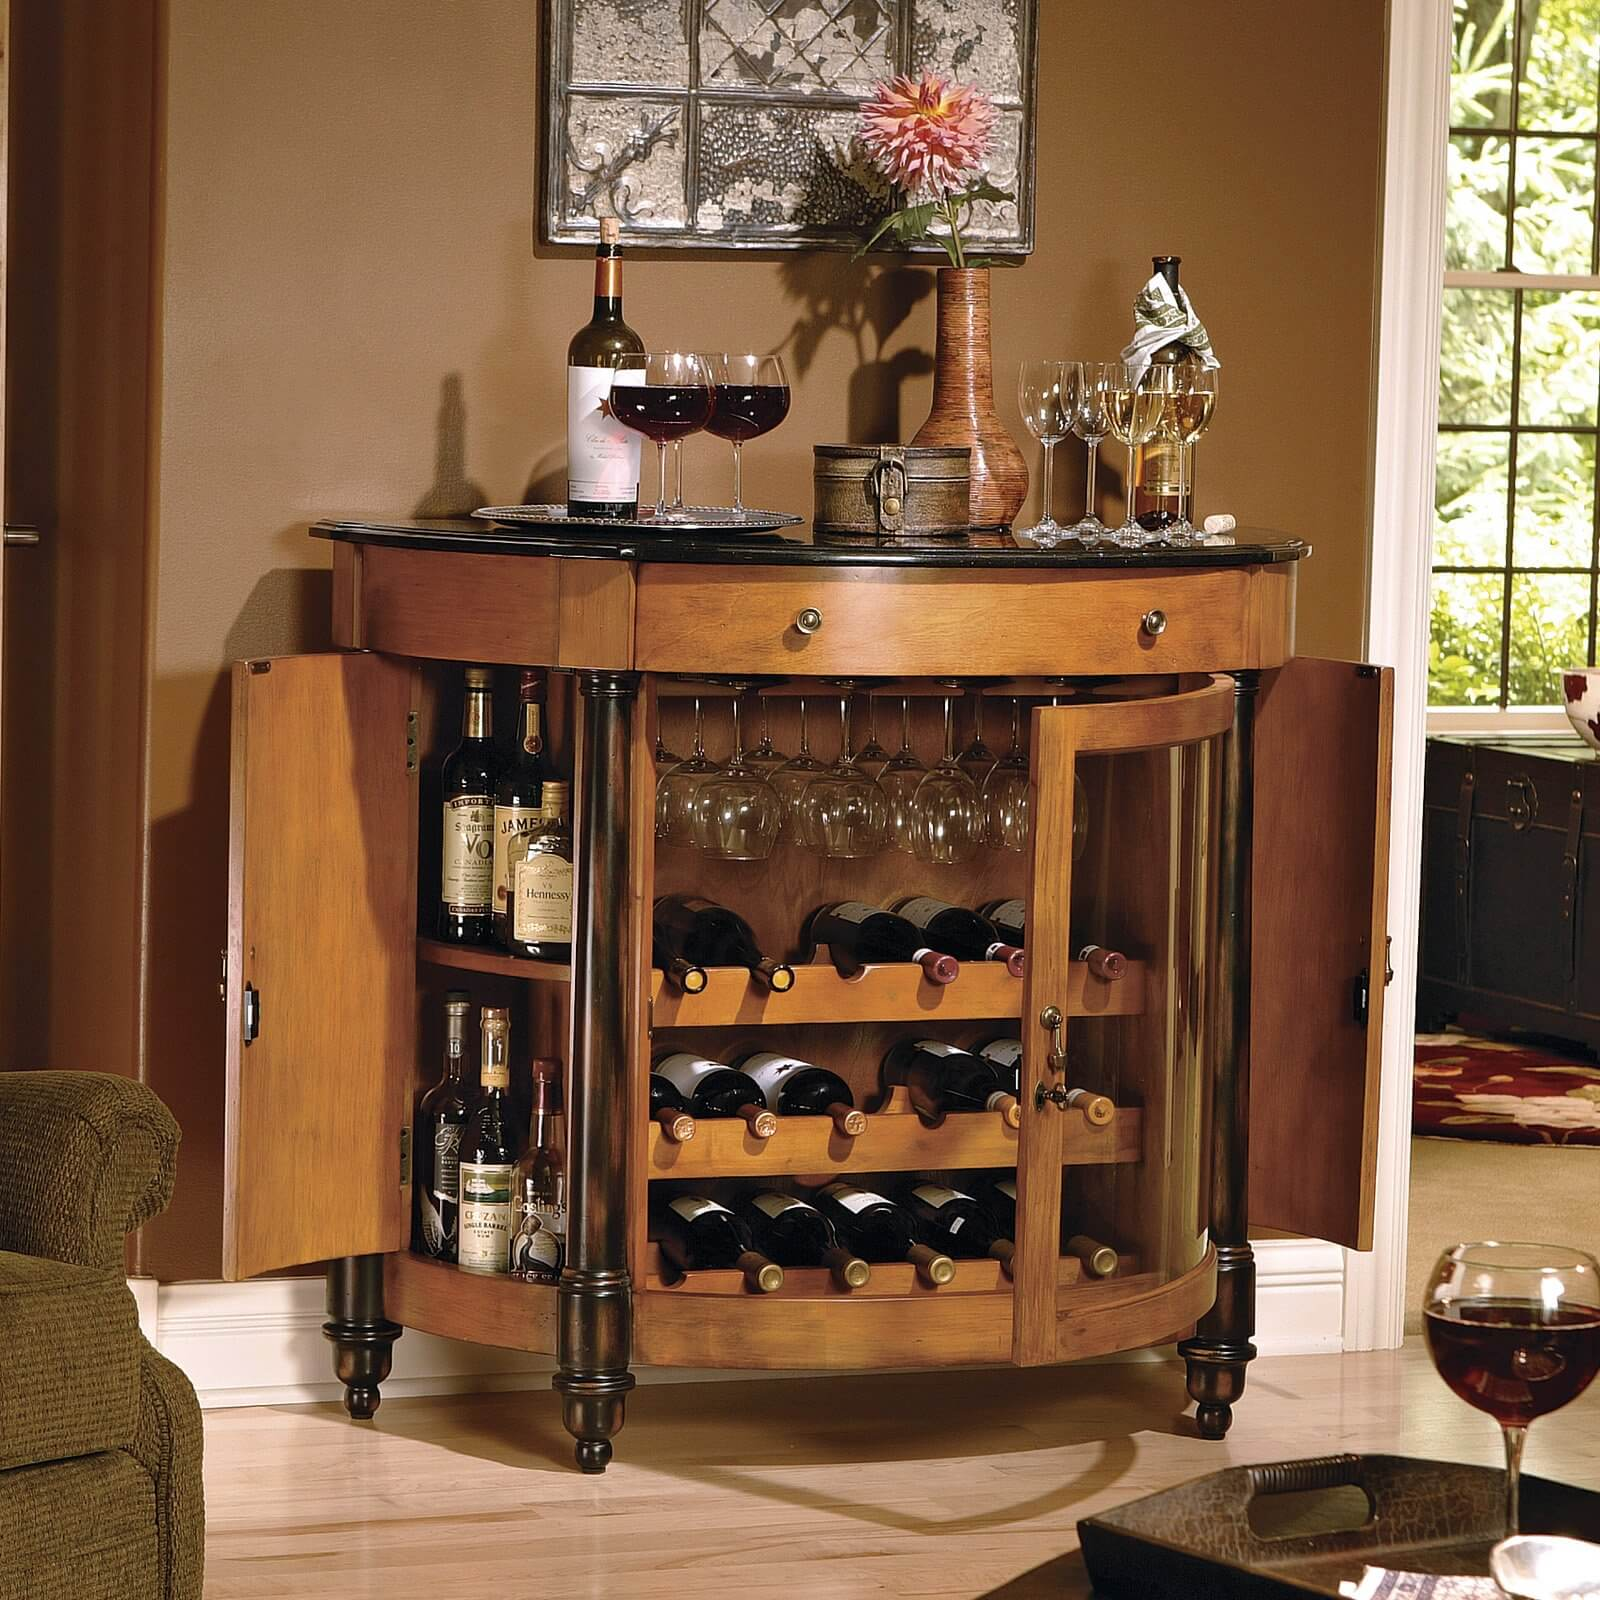 Charmant Hereu0027s A Home Bar For Wine Lovers With Itu0027s 18 Bottle Wine ...